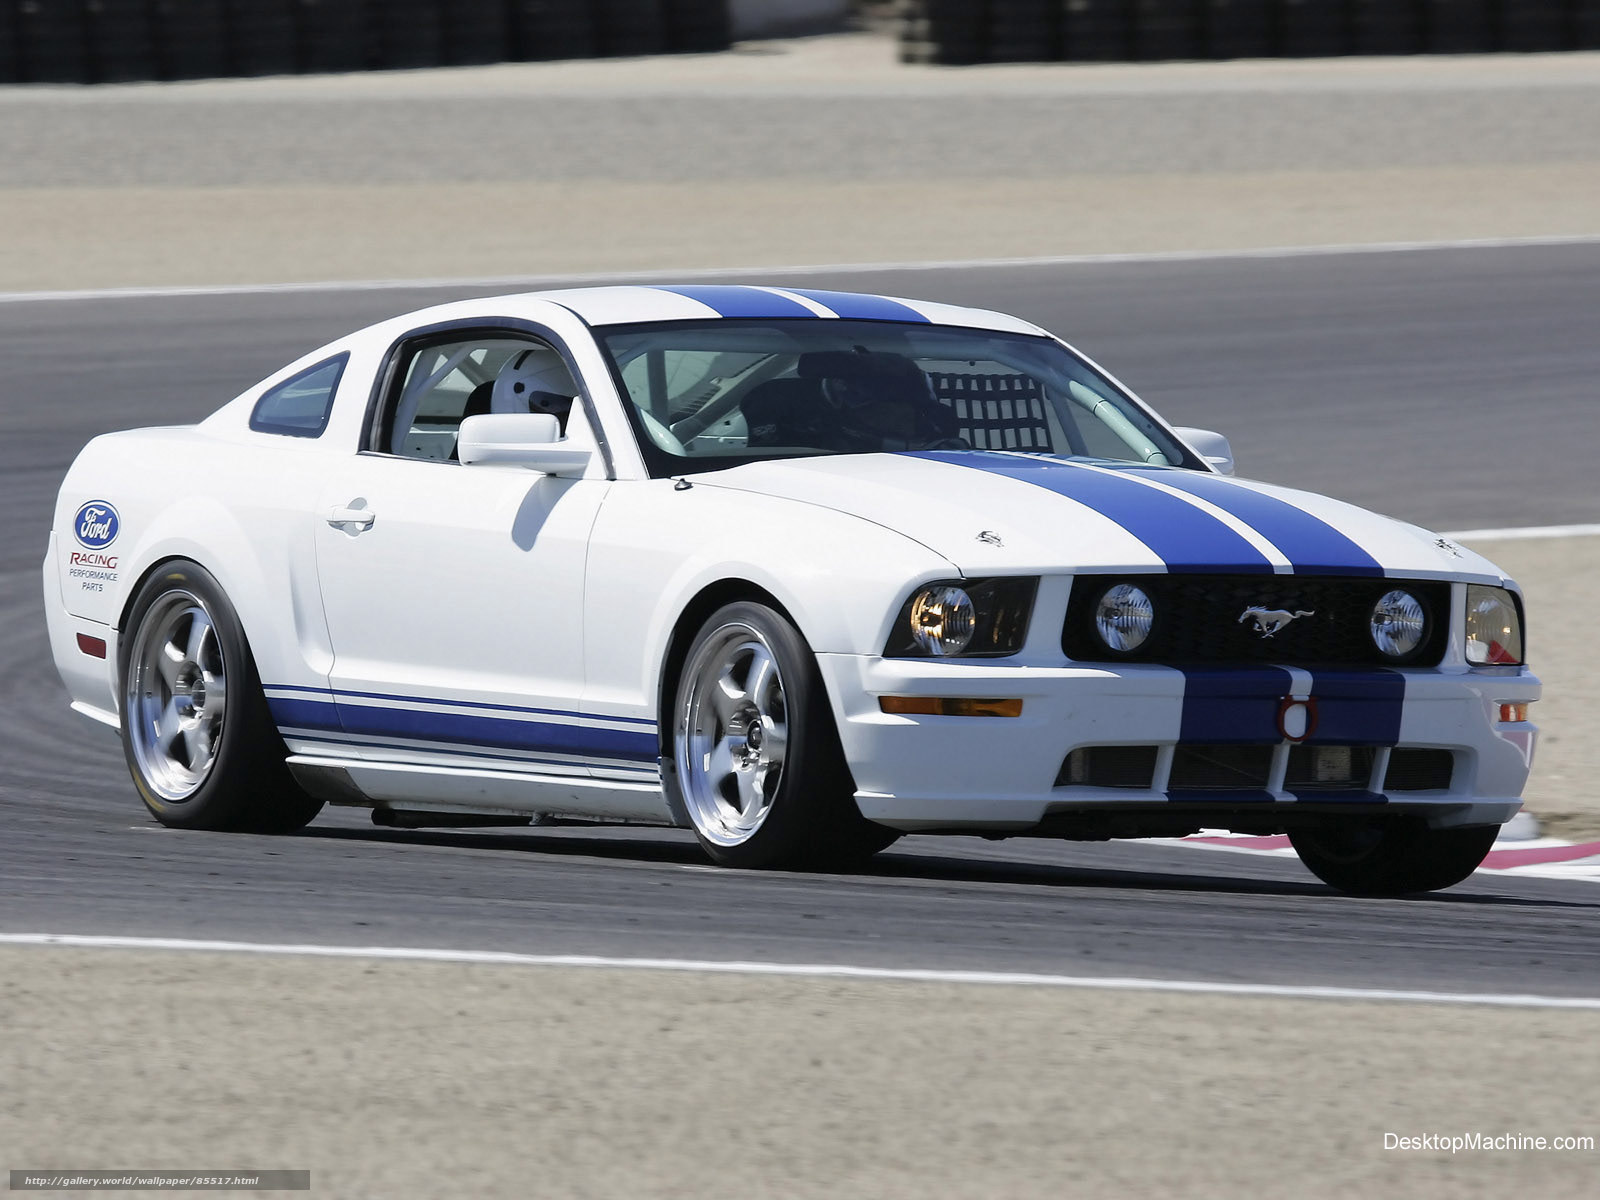 an overview of the car mustang and the properties of special treatment